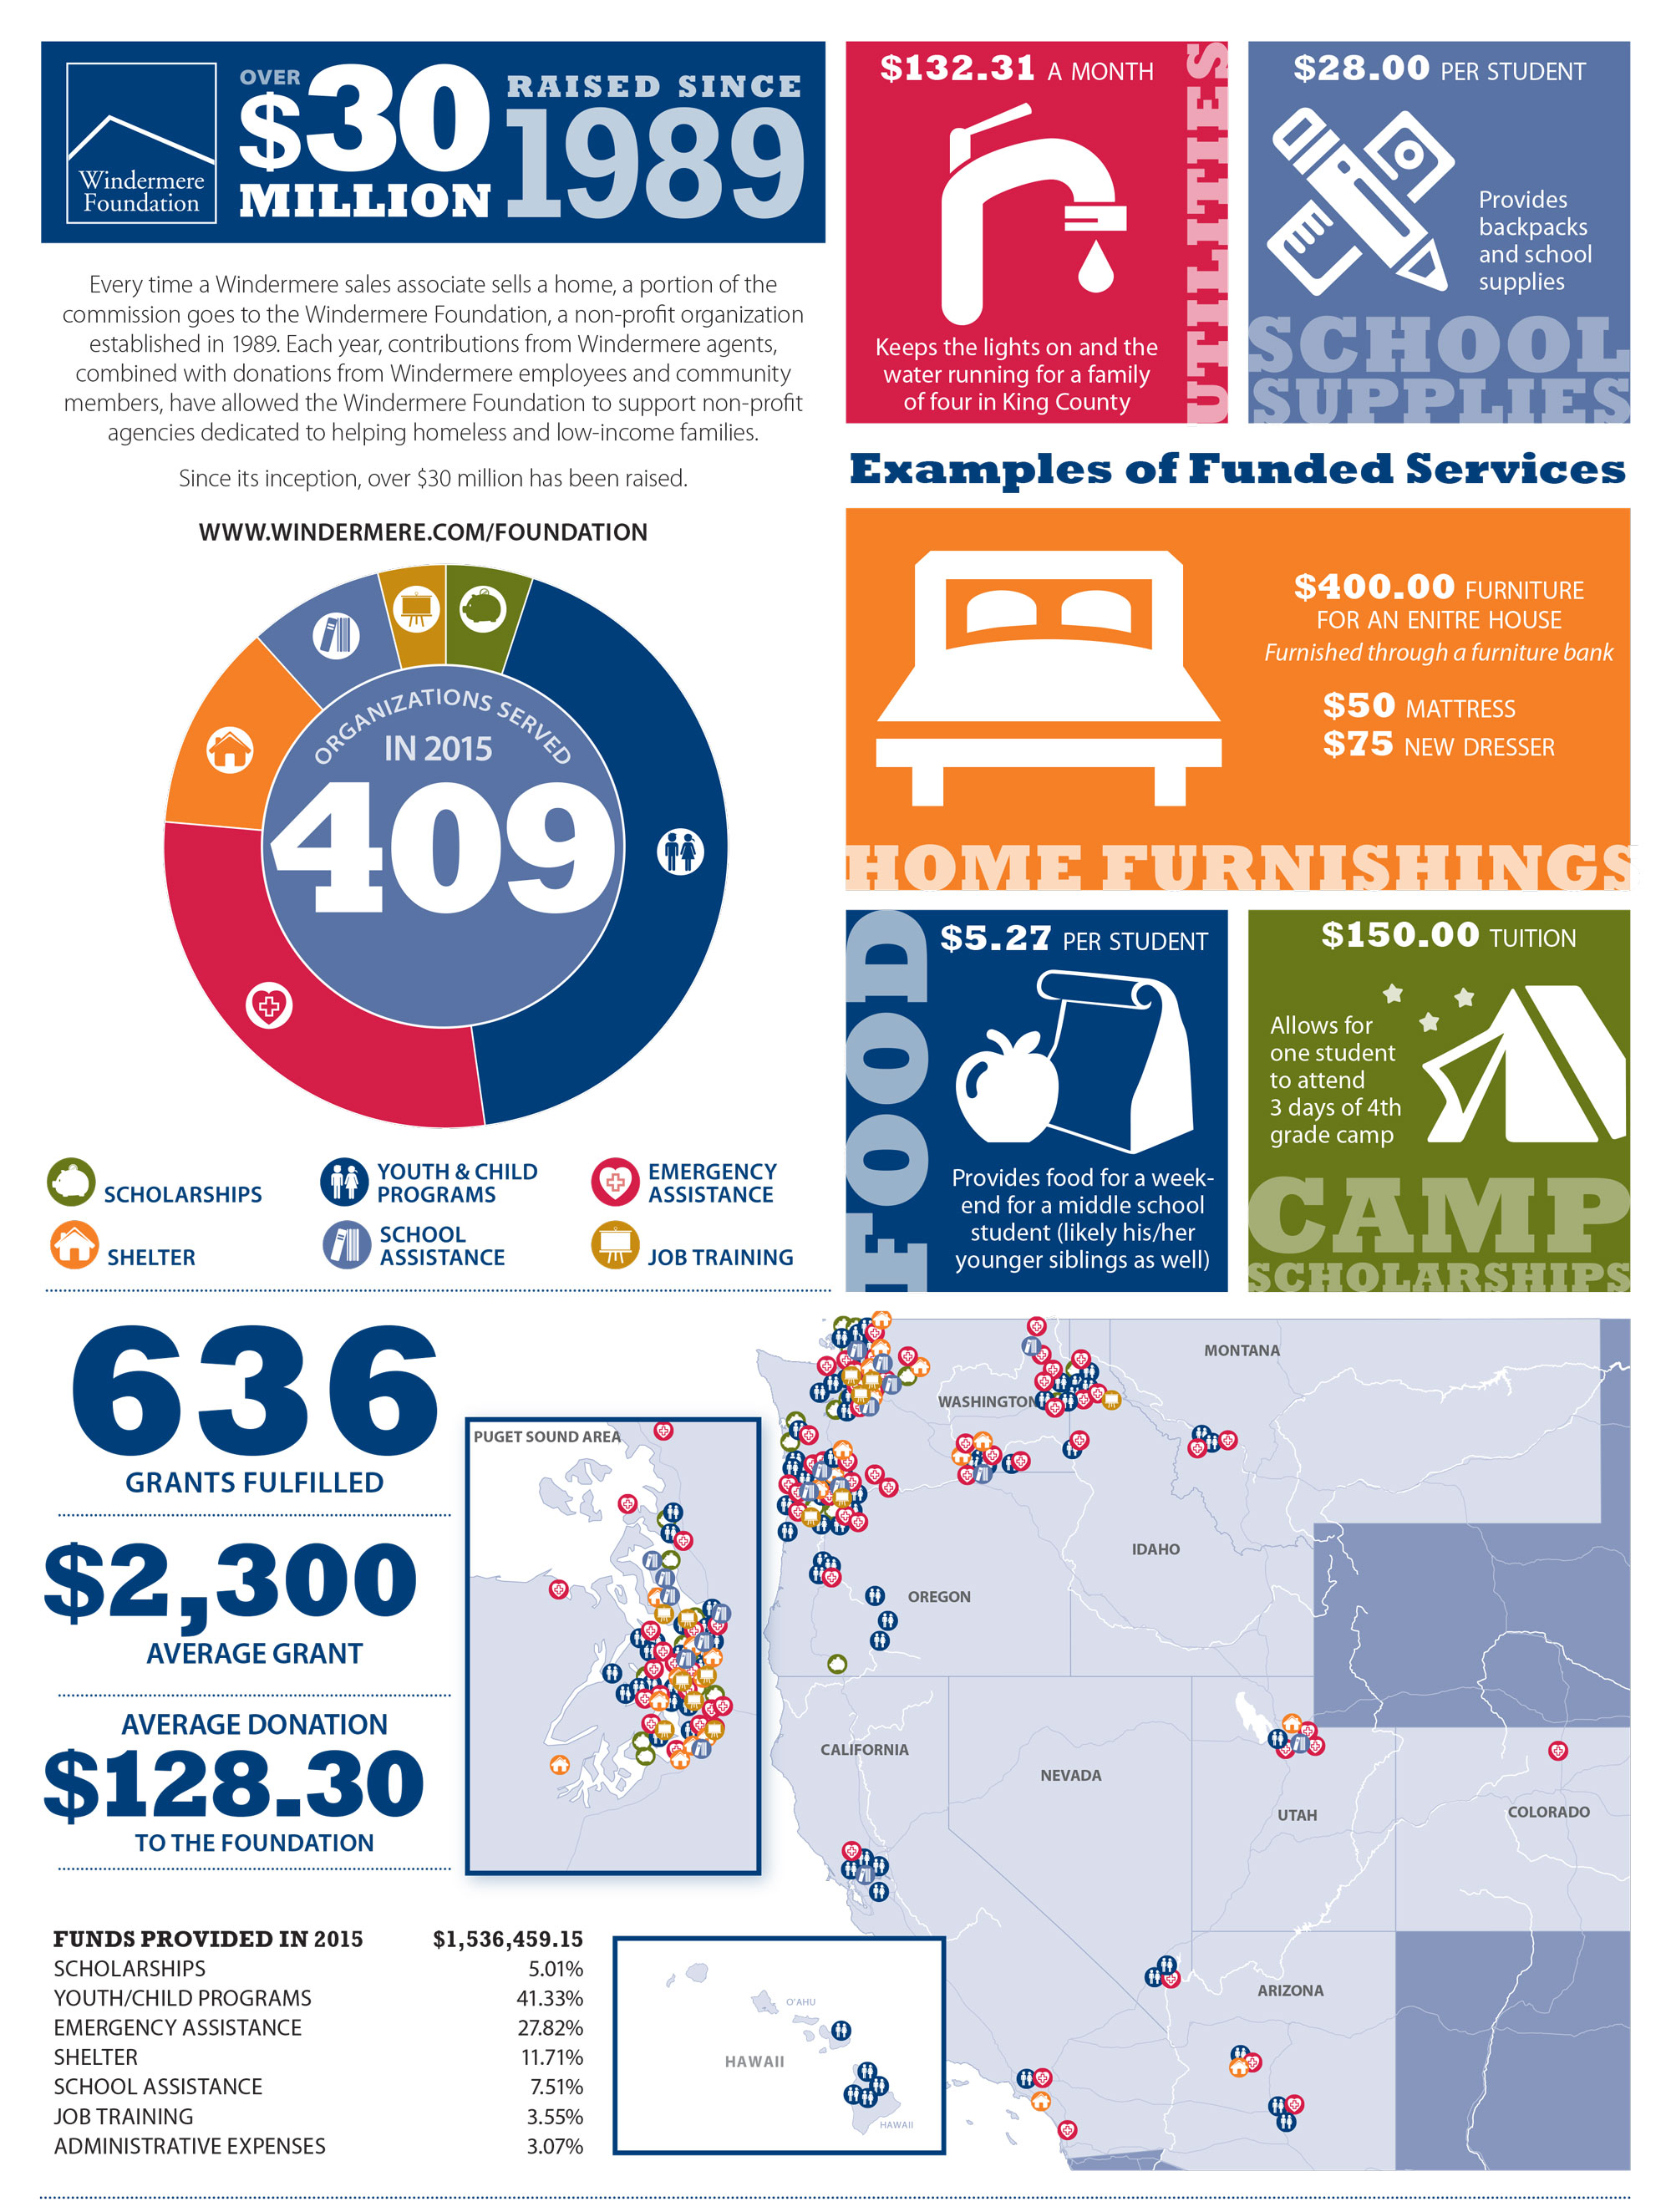 Windermere Foundation Infographic 2015